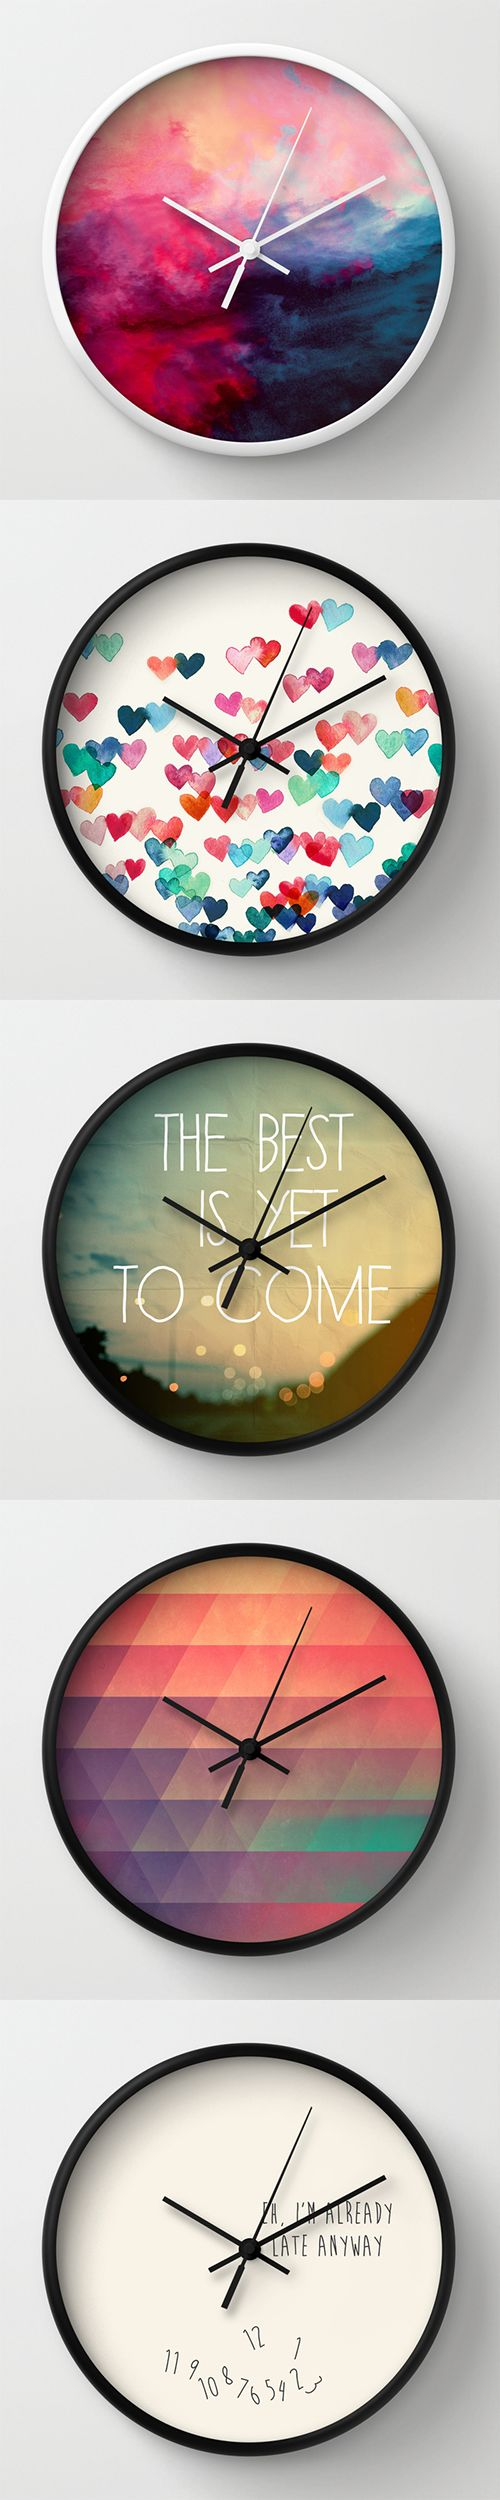 best 25 wall clock decor ideas on pinterest large clock large wall clocks and millions of other products available atsociety6 com today every purchase supports